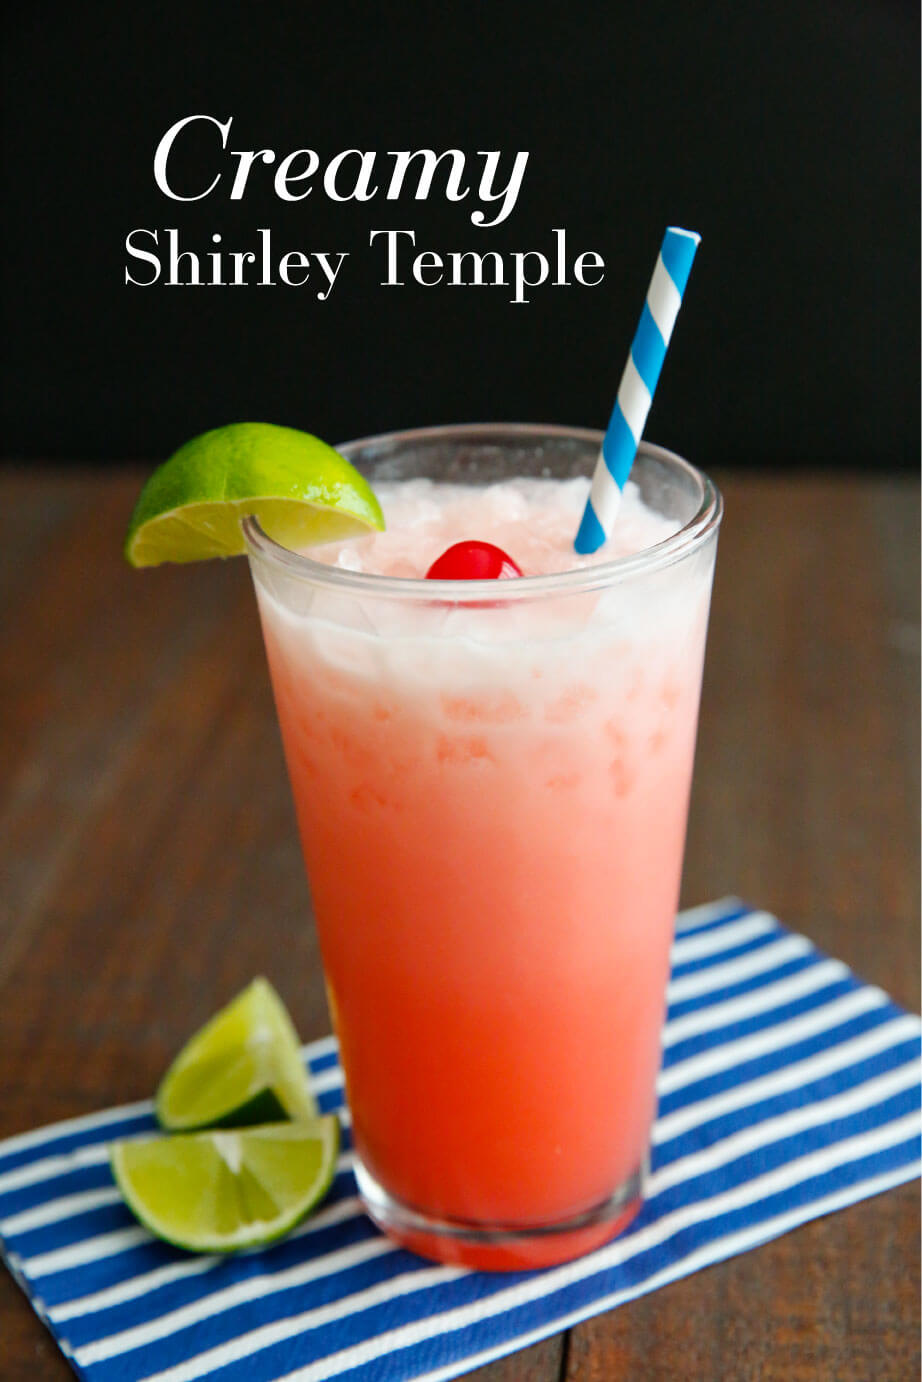 Creamy Shirley Temple drink - simple and delicious drink recipe. It's so refreshing!